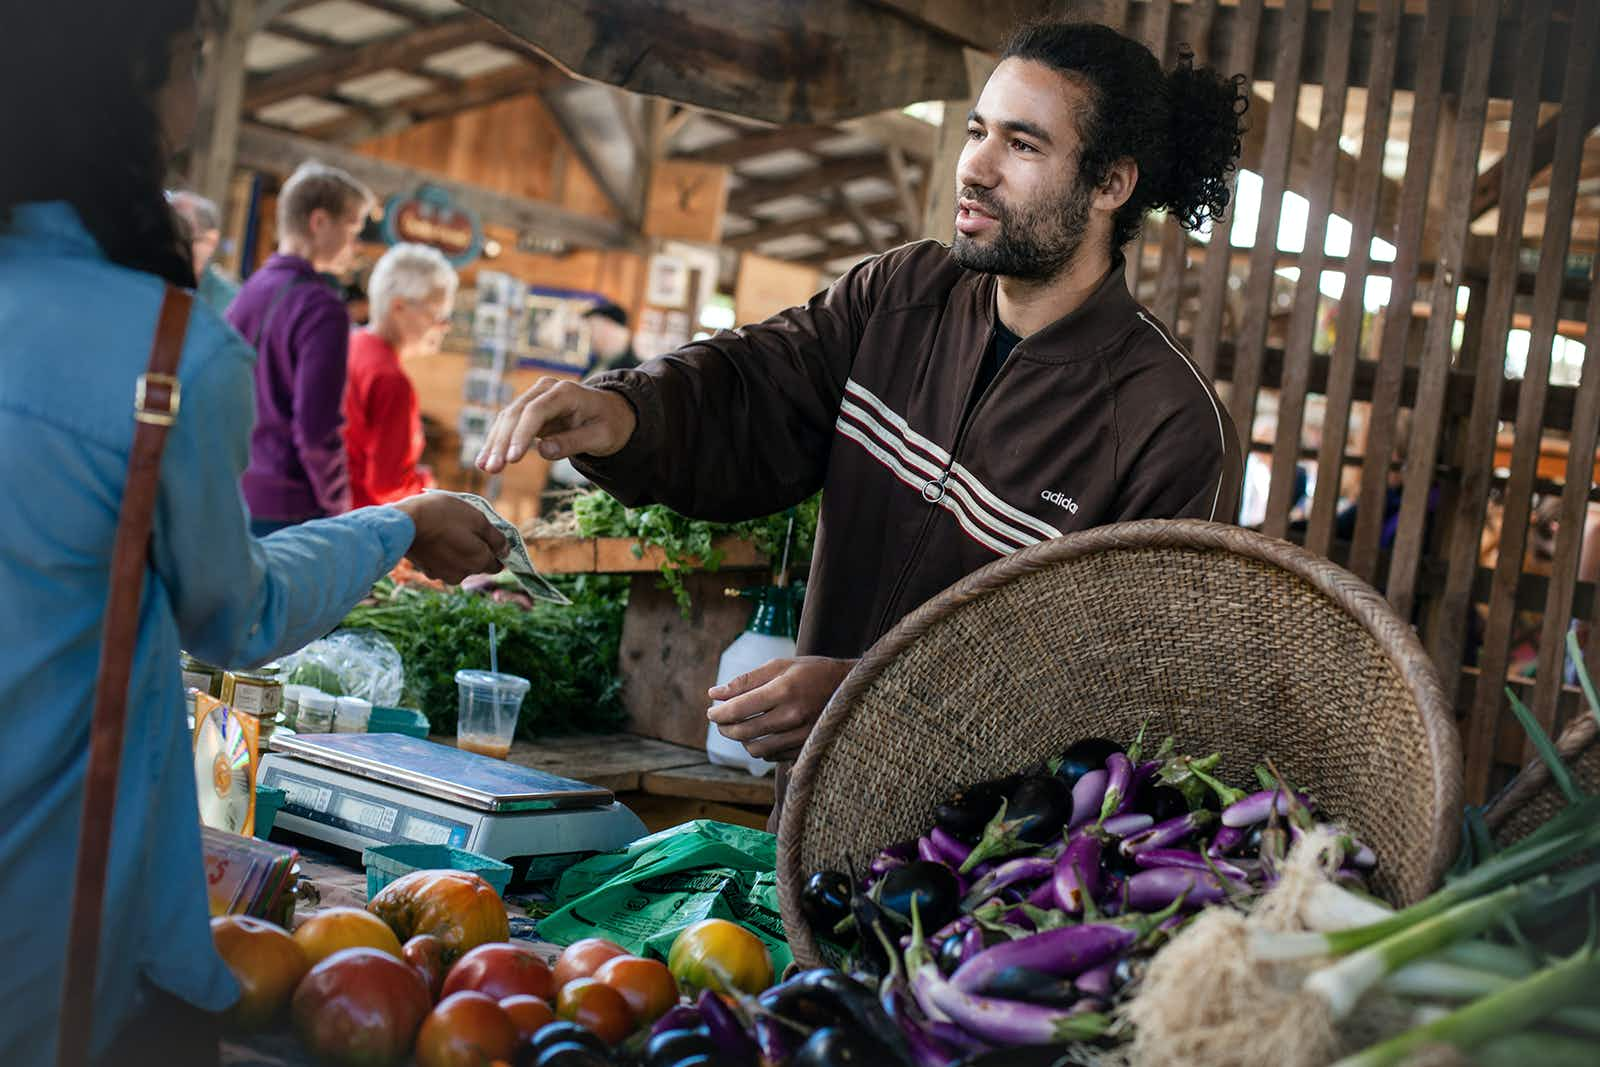 A man smiles and hands change to a woman over a stall of fresh local vegetables (eggplant, etc) at a farmer's market